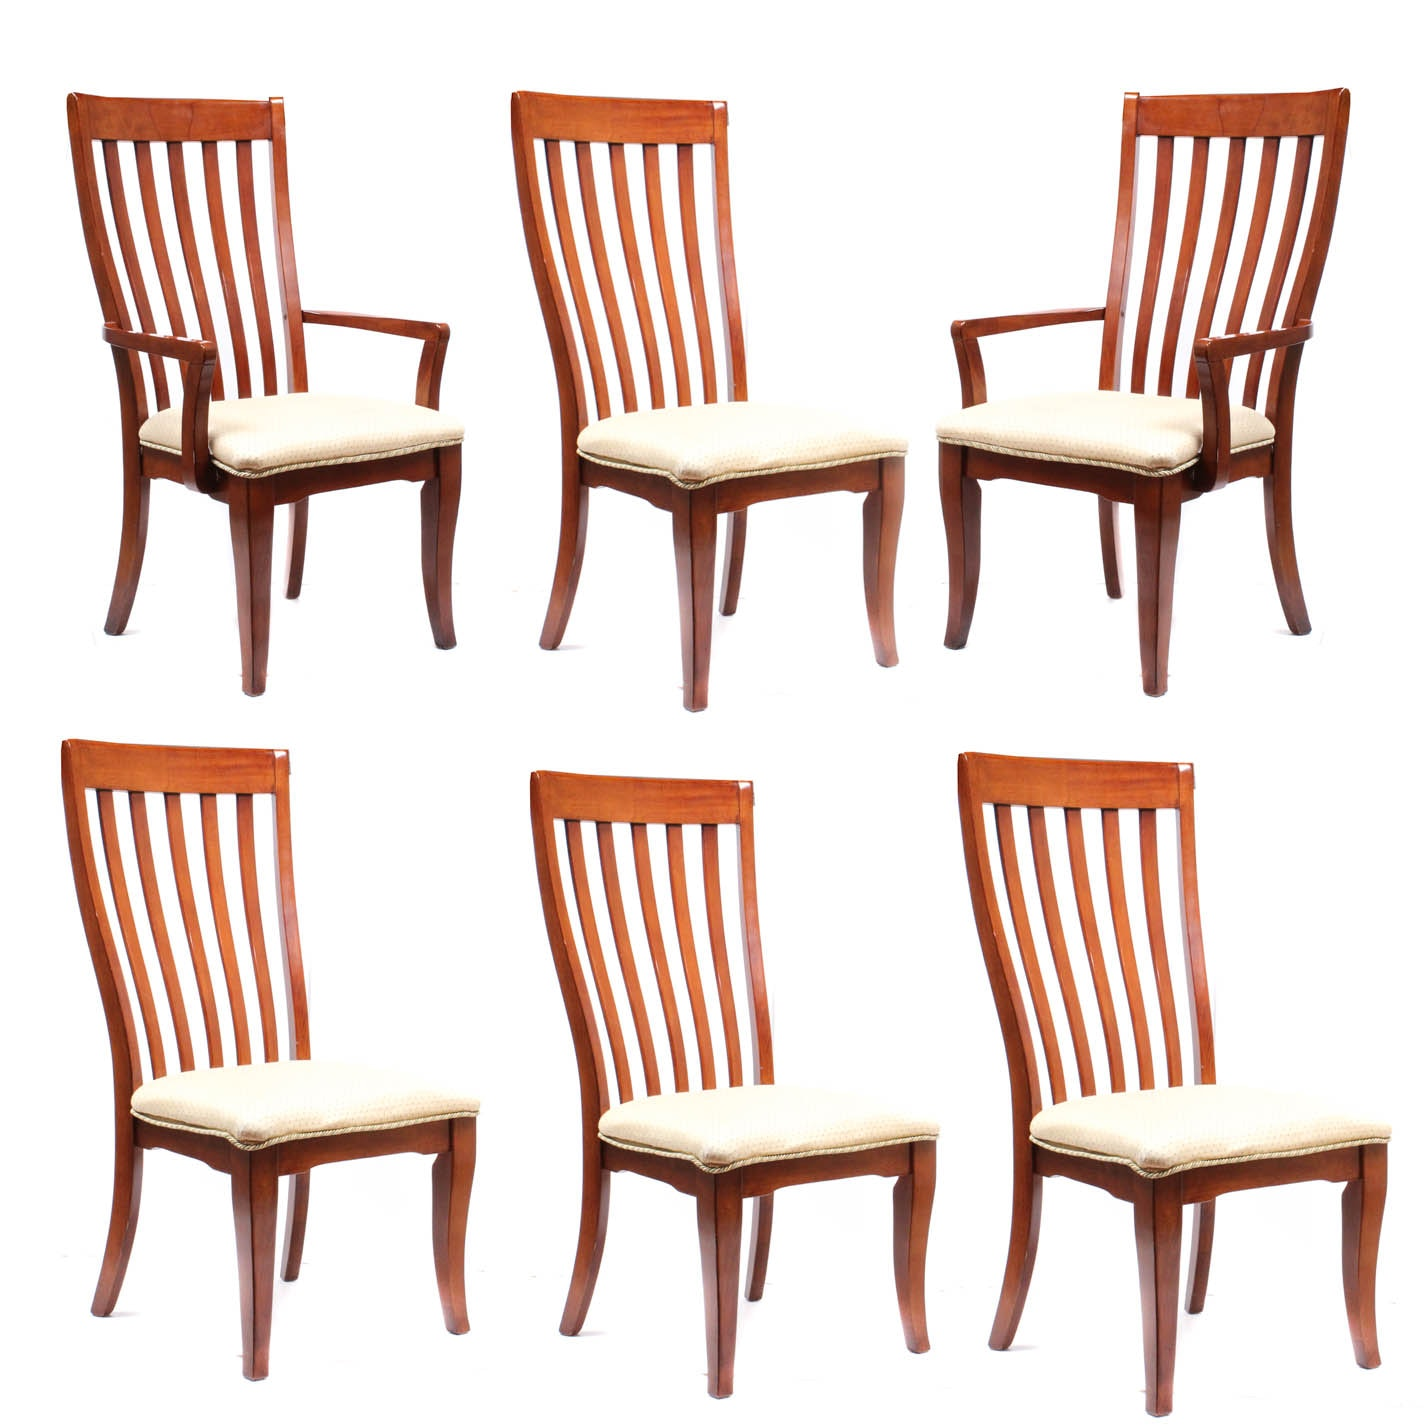 Contemporary Dining Chairs with Slat Backs